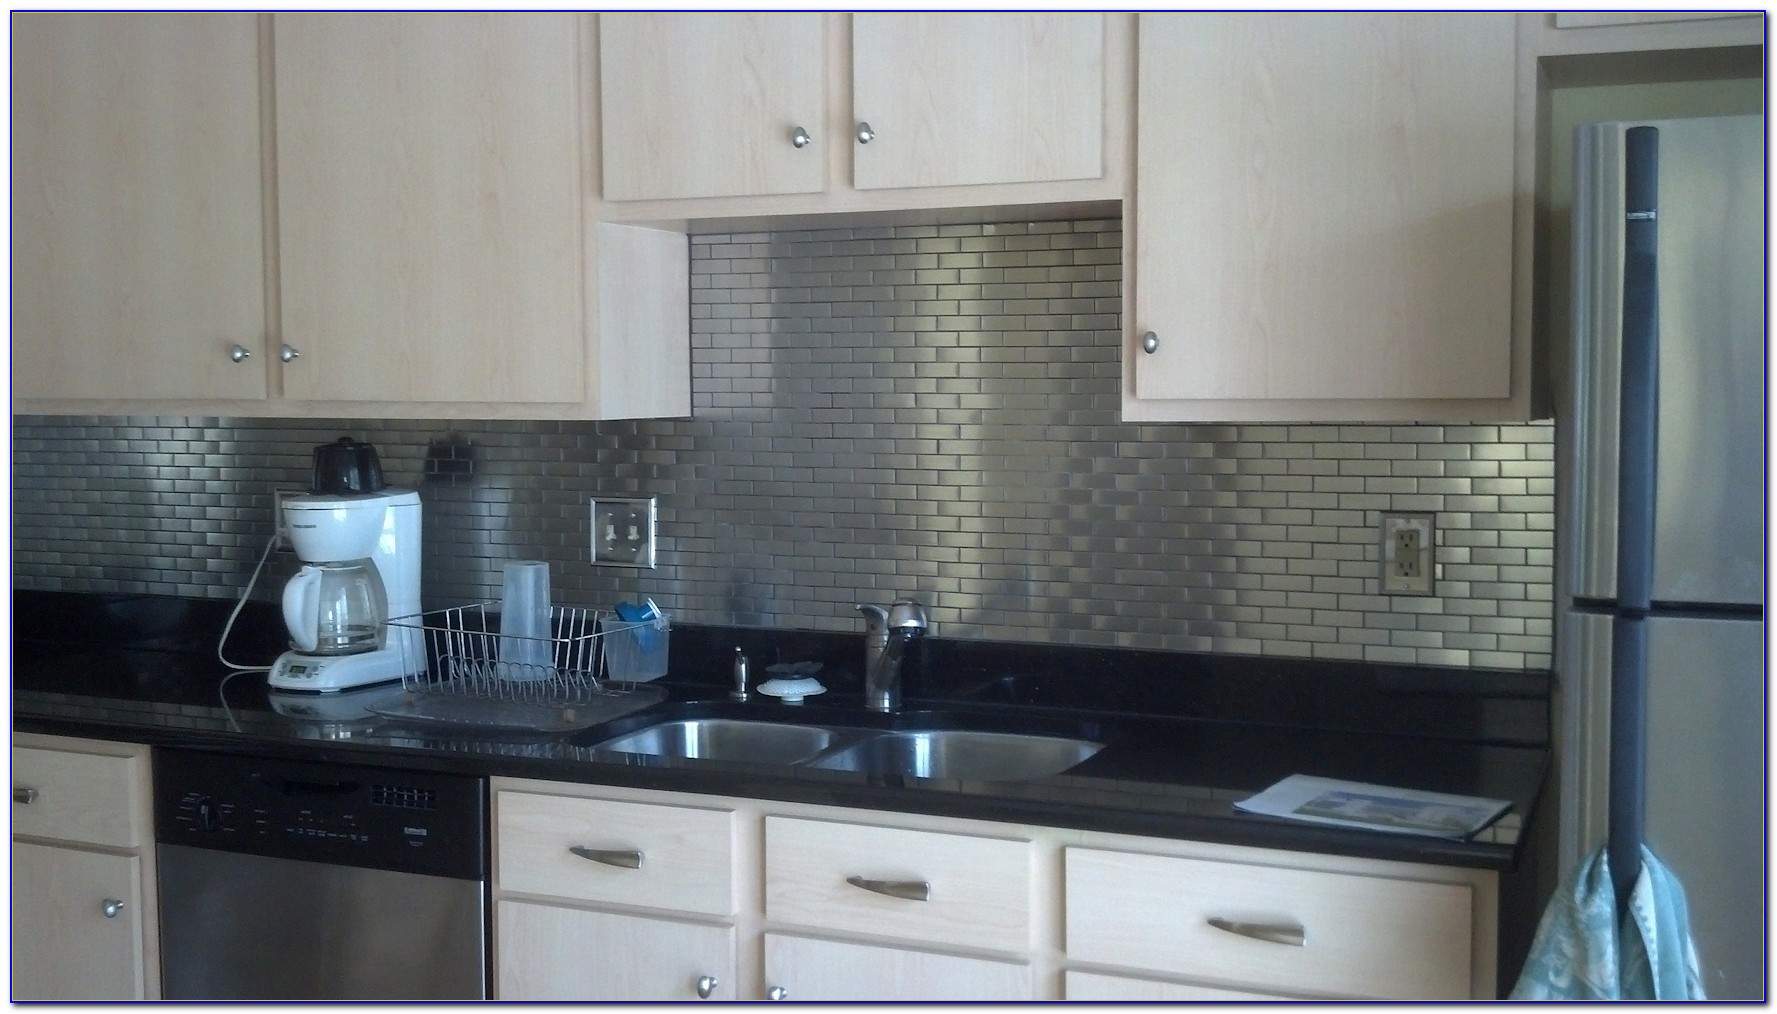 Stainless Steel Subway Tiles Peel And Stick